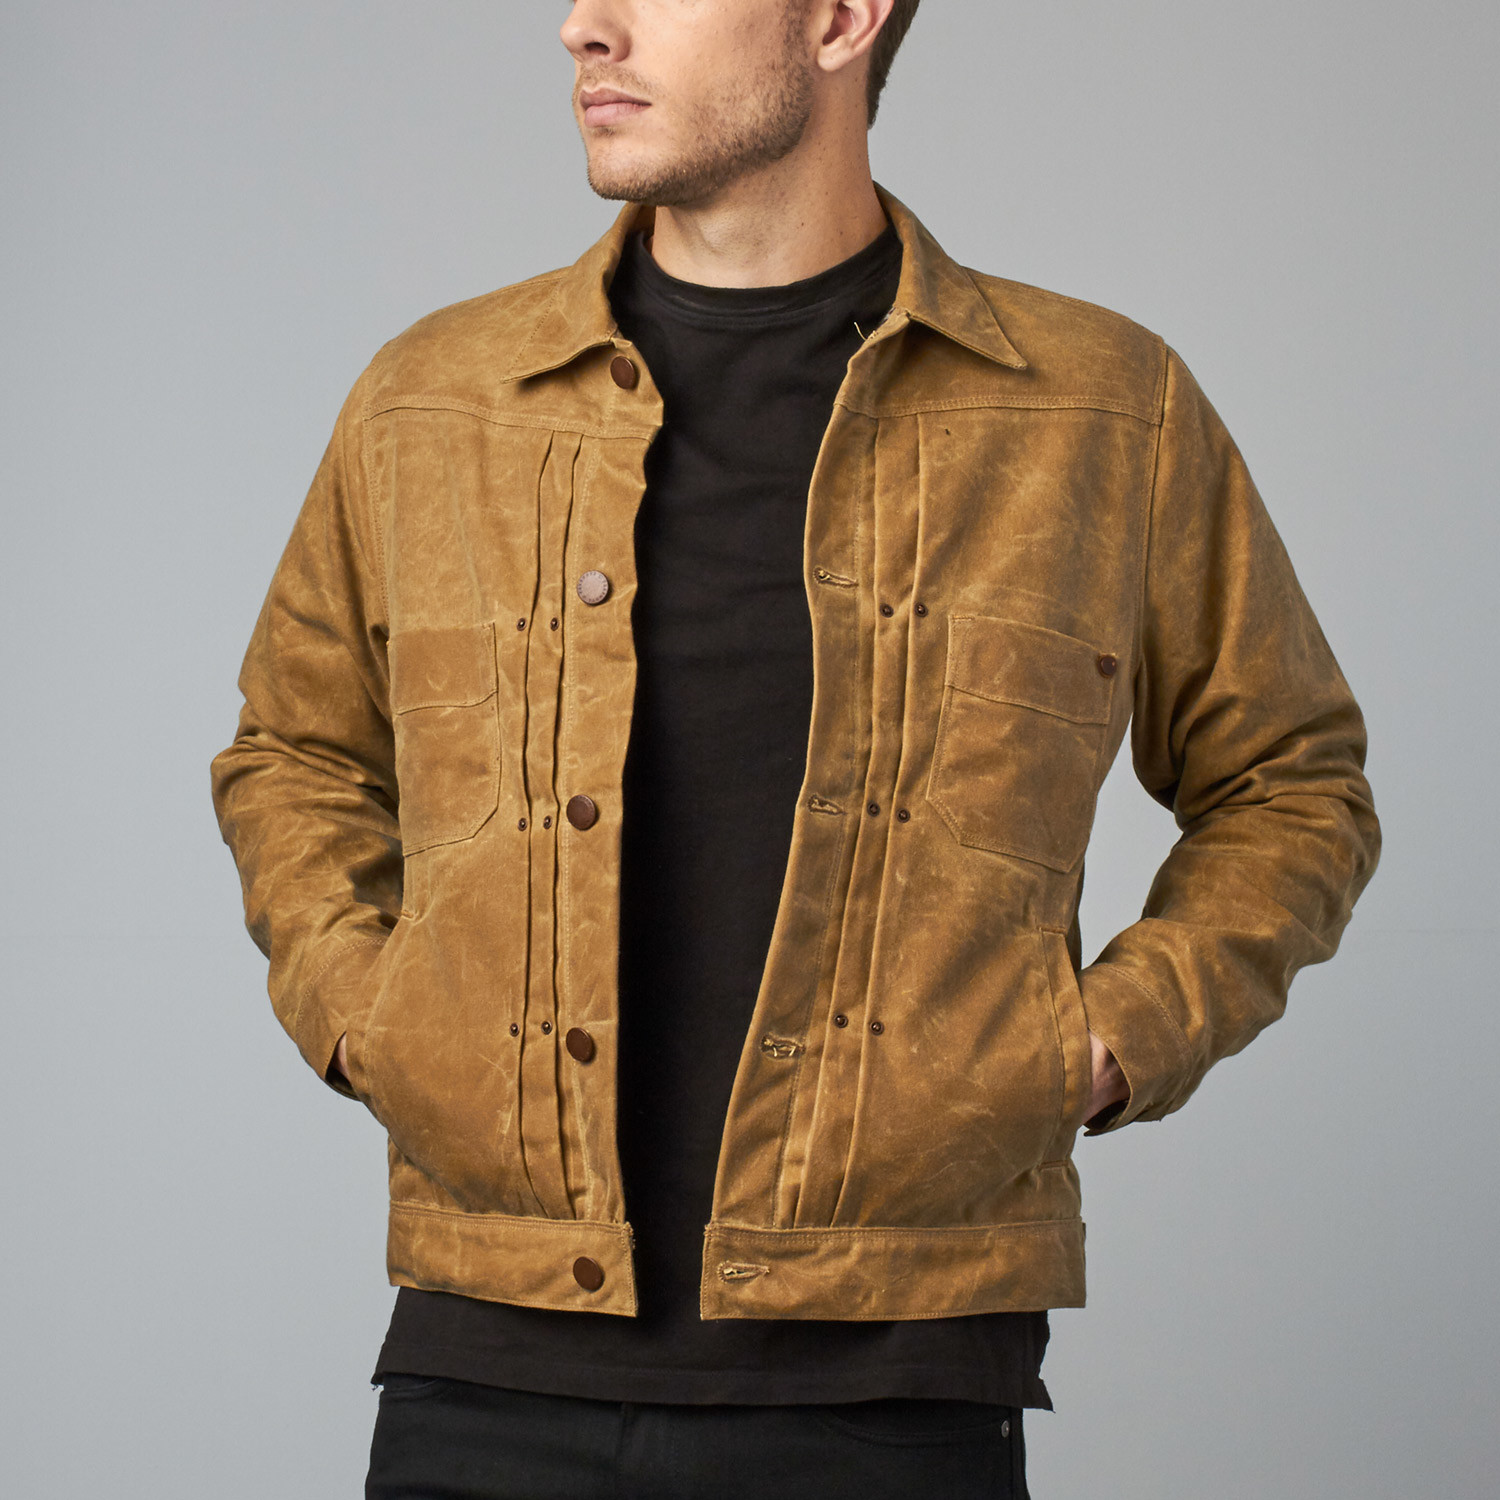 Riders Jacket Waxed Canvas Tobacco S Freenote